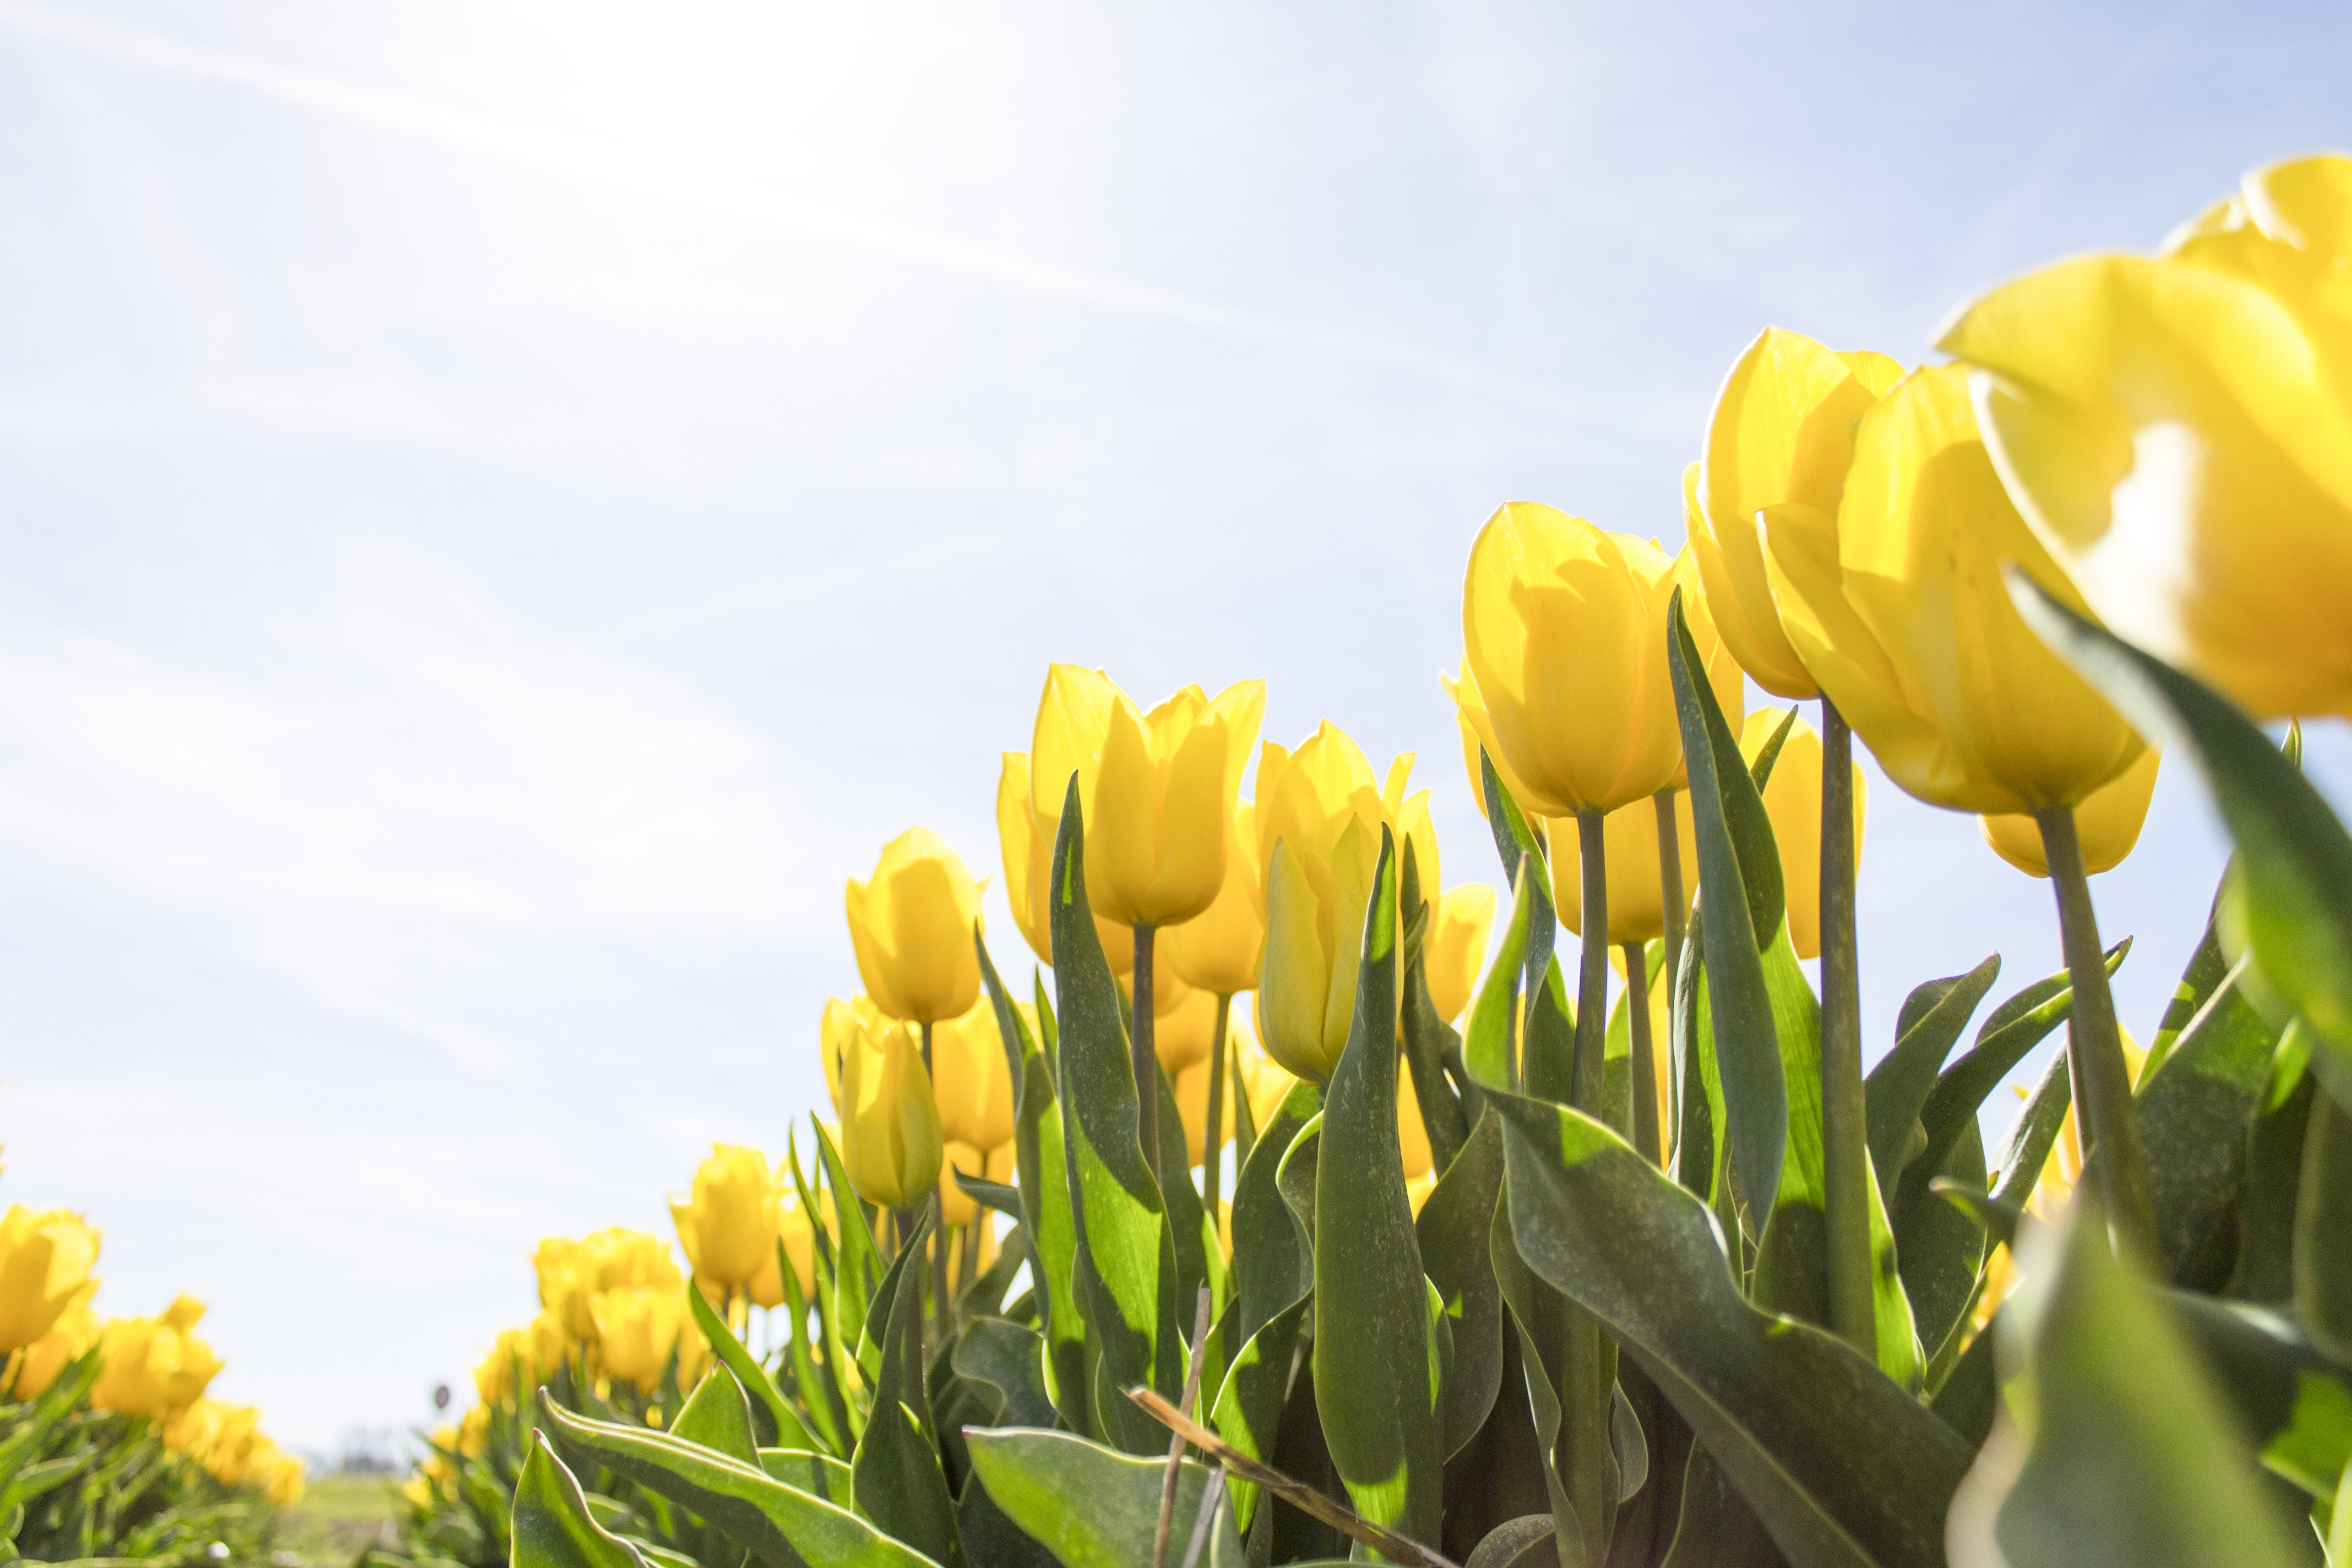 Yellow Tulip Flower Field during Daytime, Beautiful, Growth, Outdoors, Plants, HQ Photo